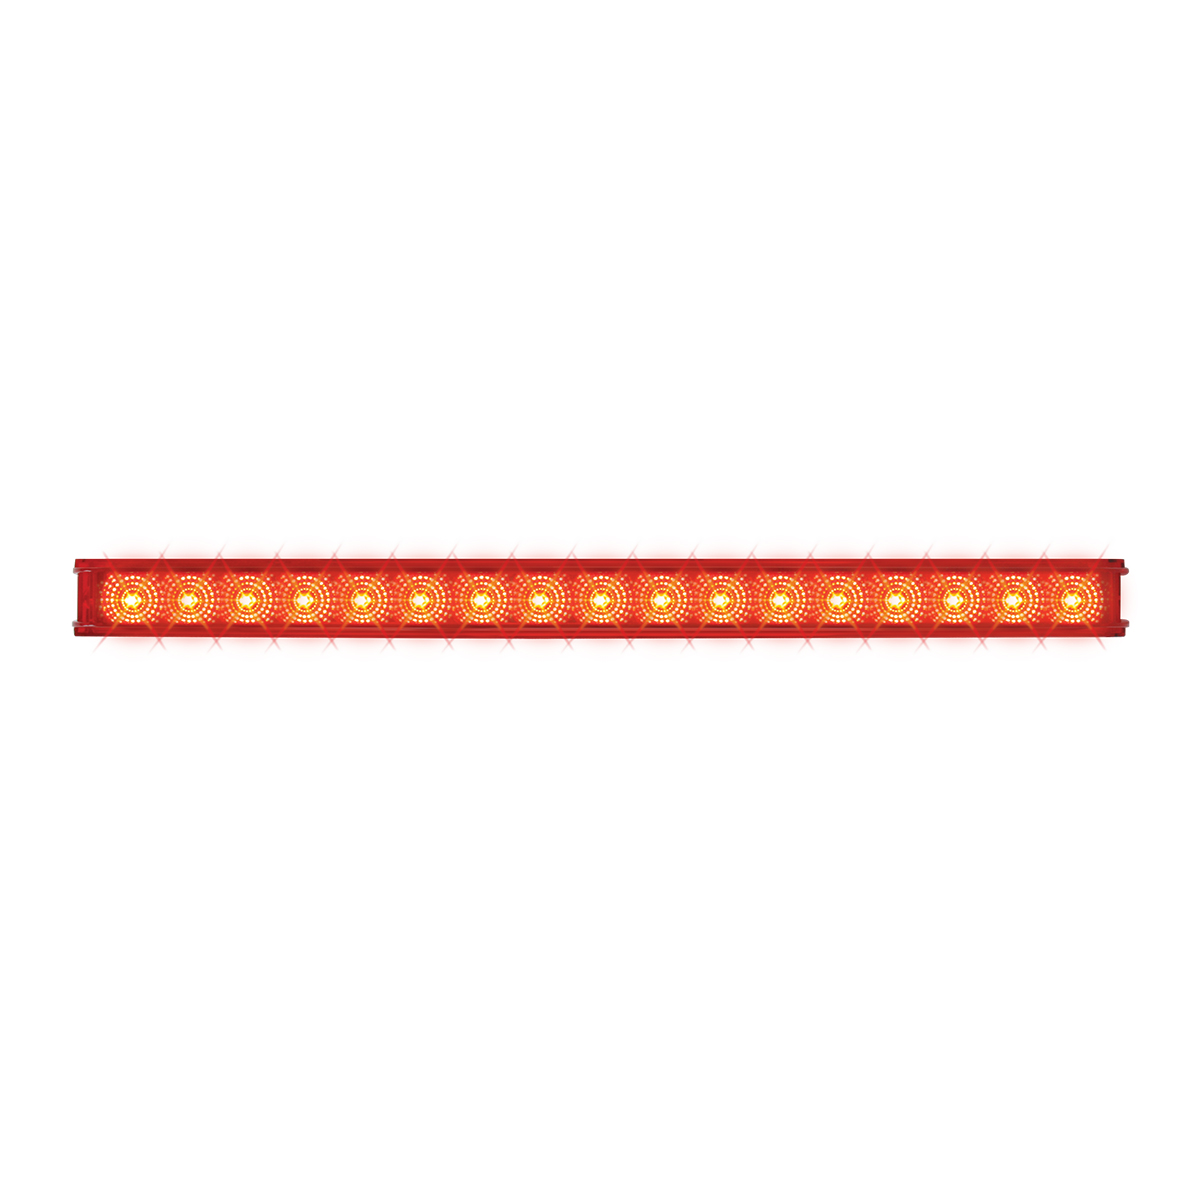 "76982 20"" Spyder LED Light Bar"